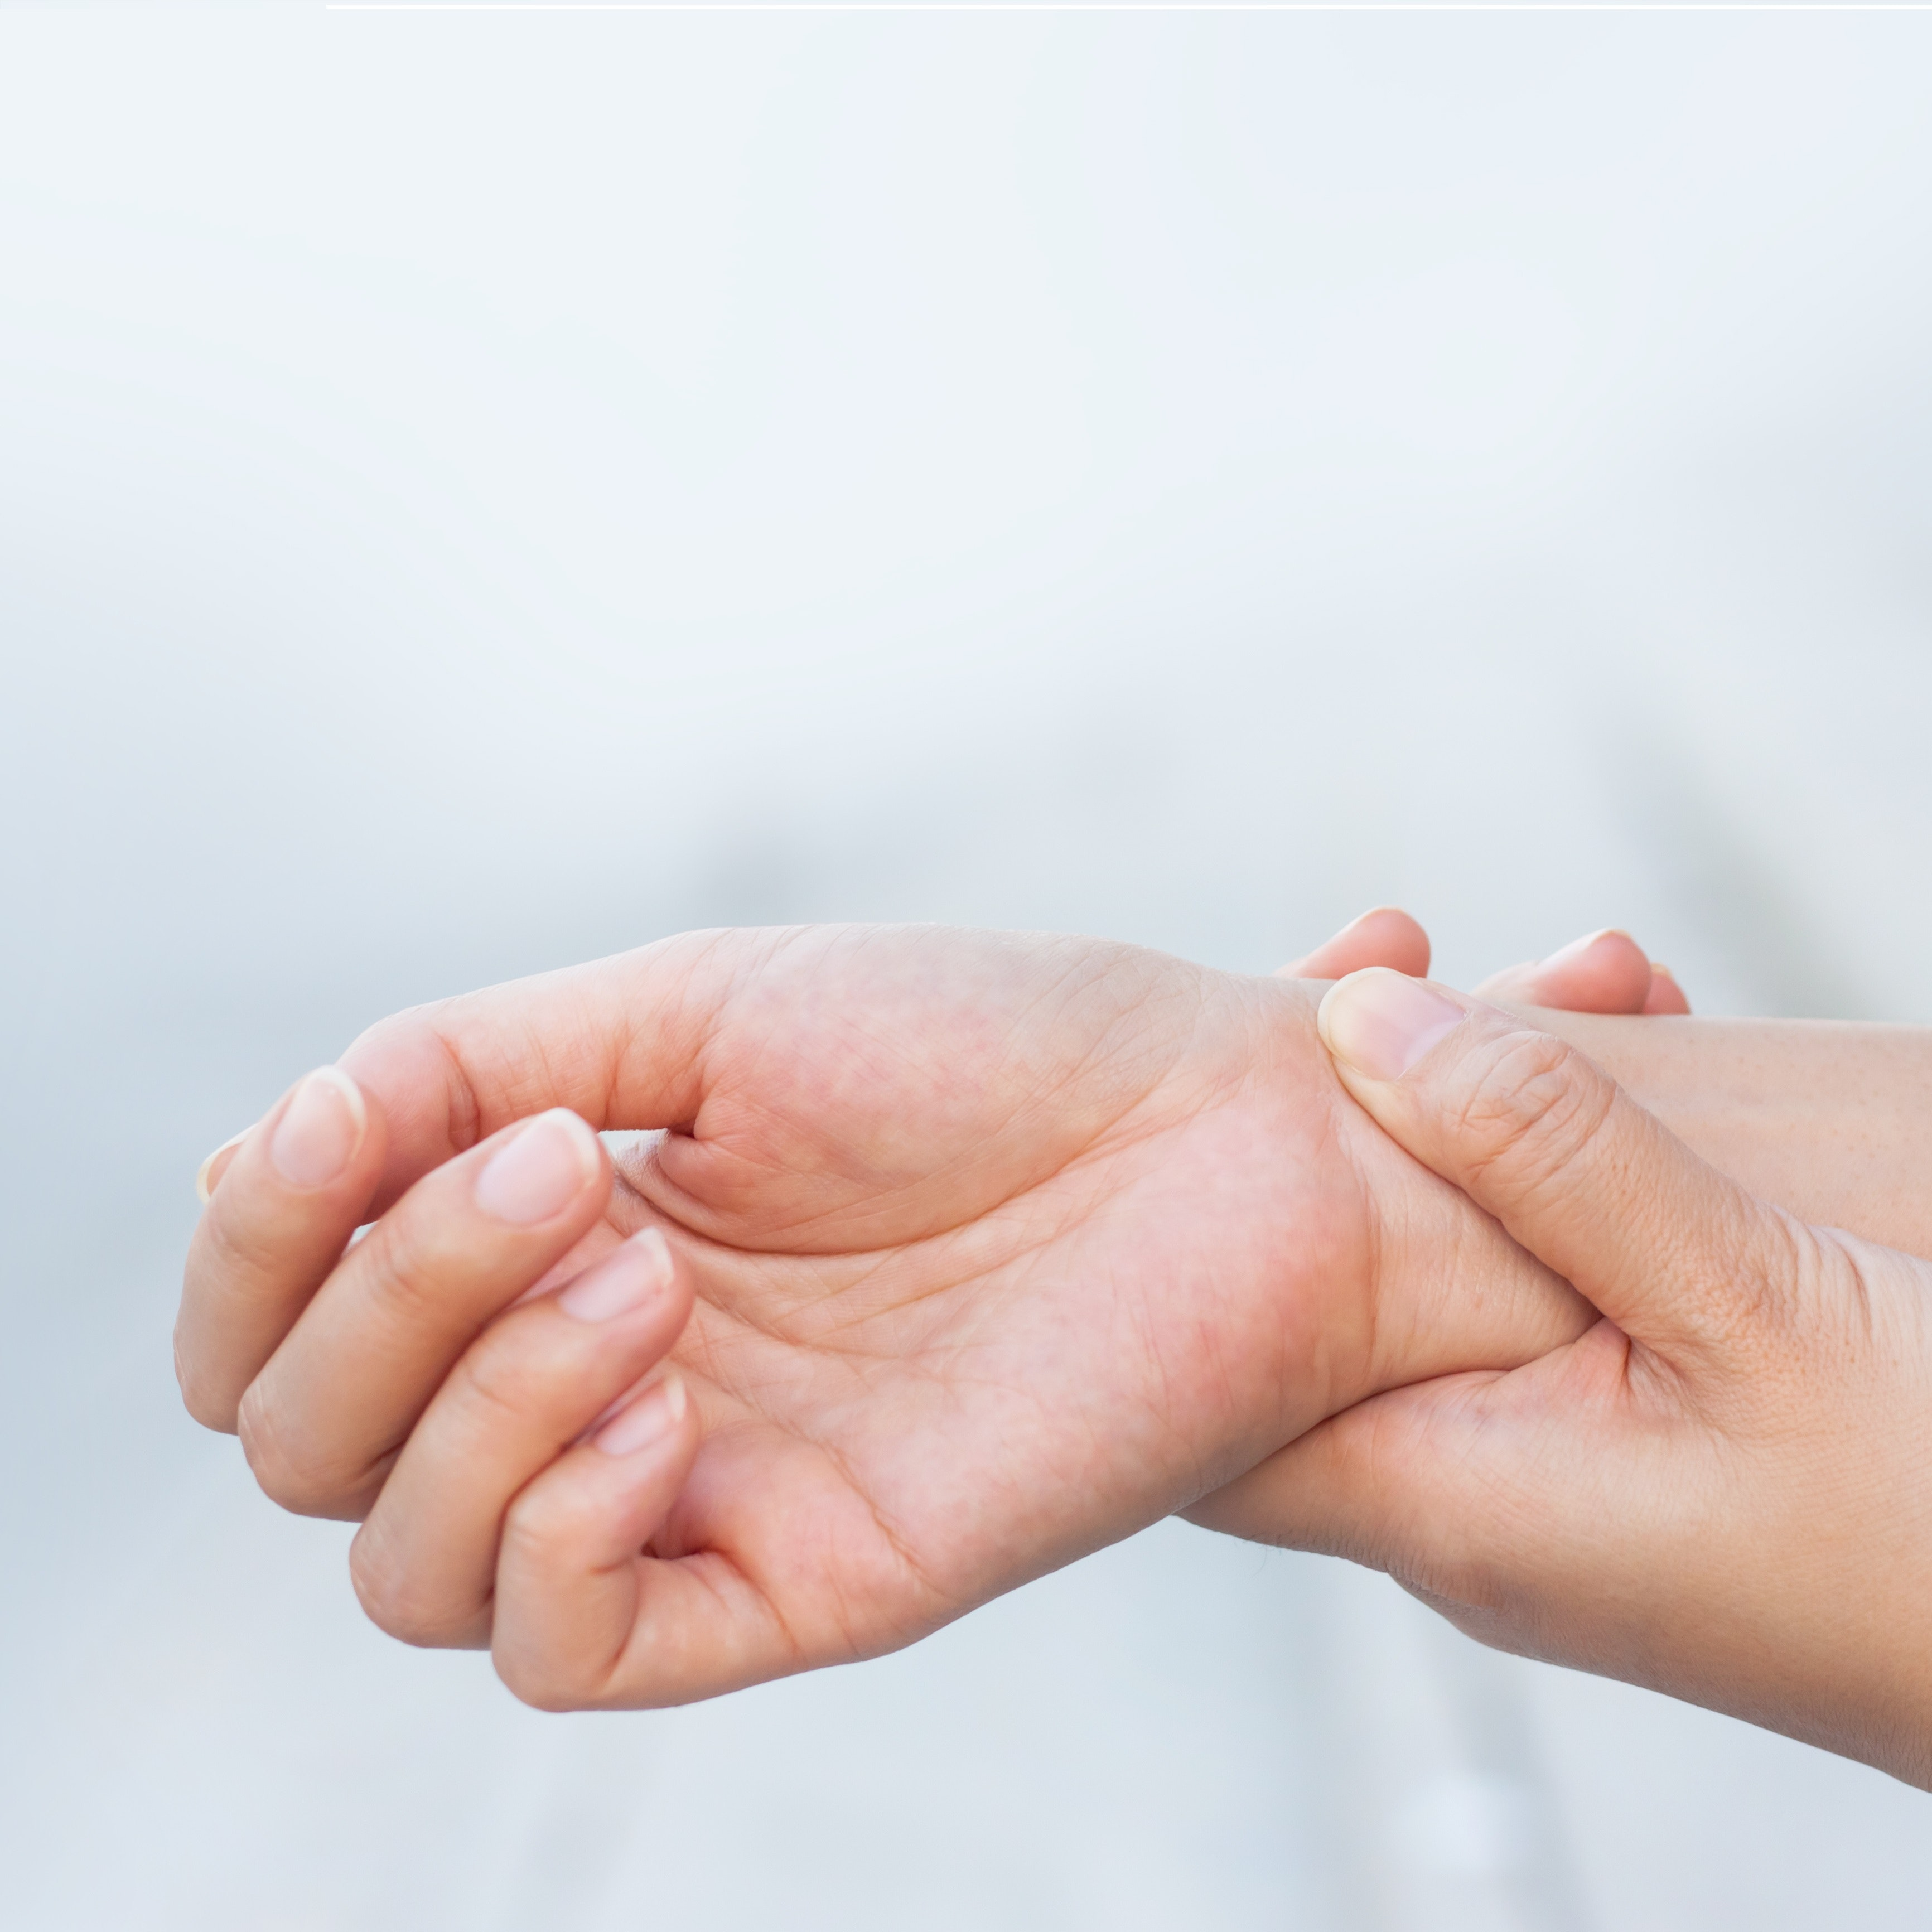 An image depicting a person suffering from severe wrist pain symptoms